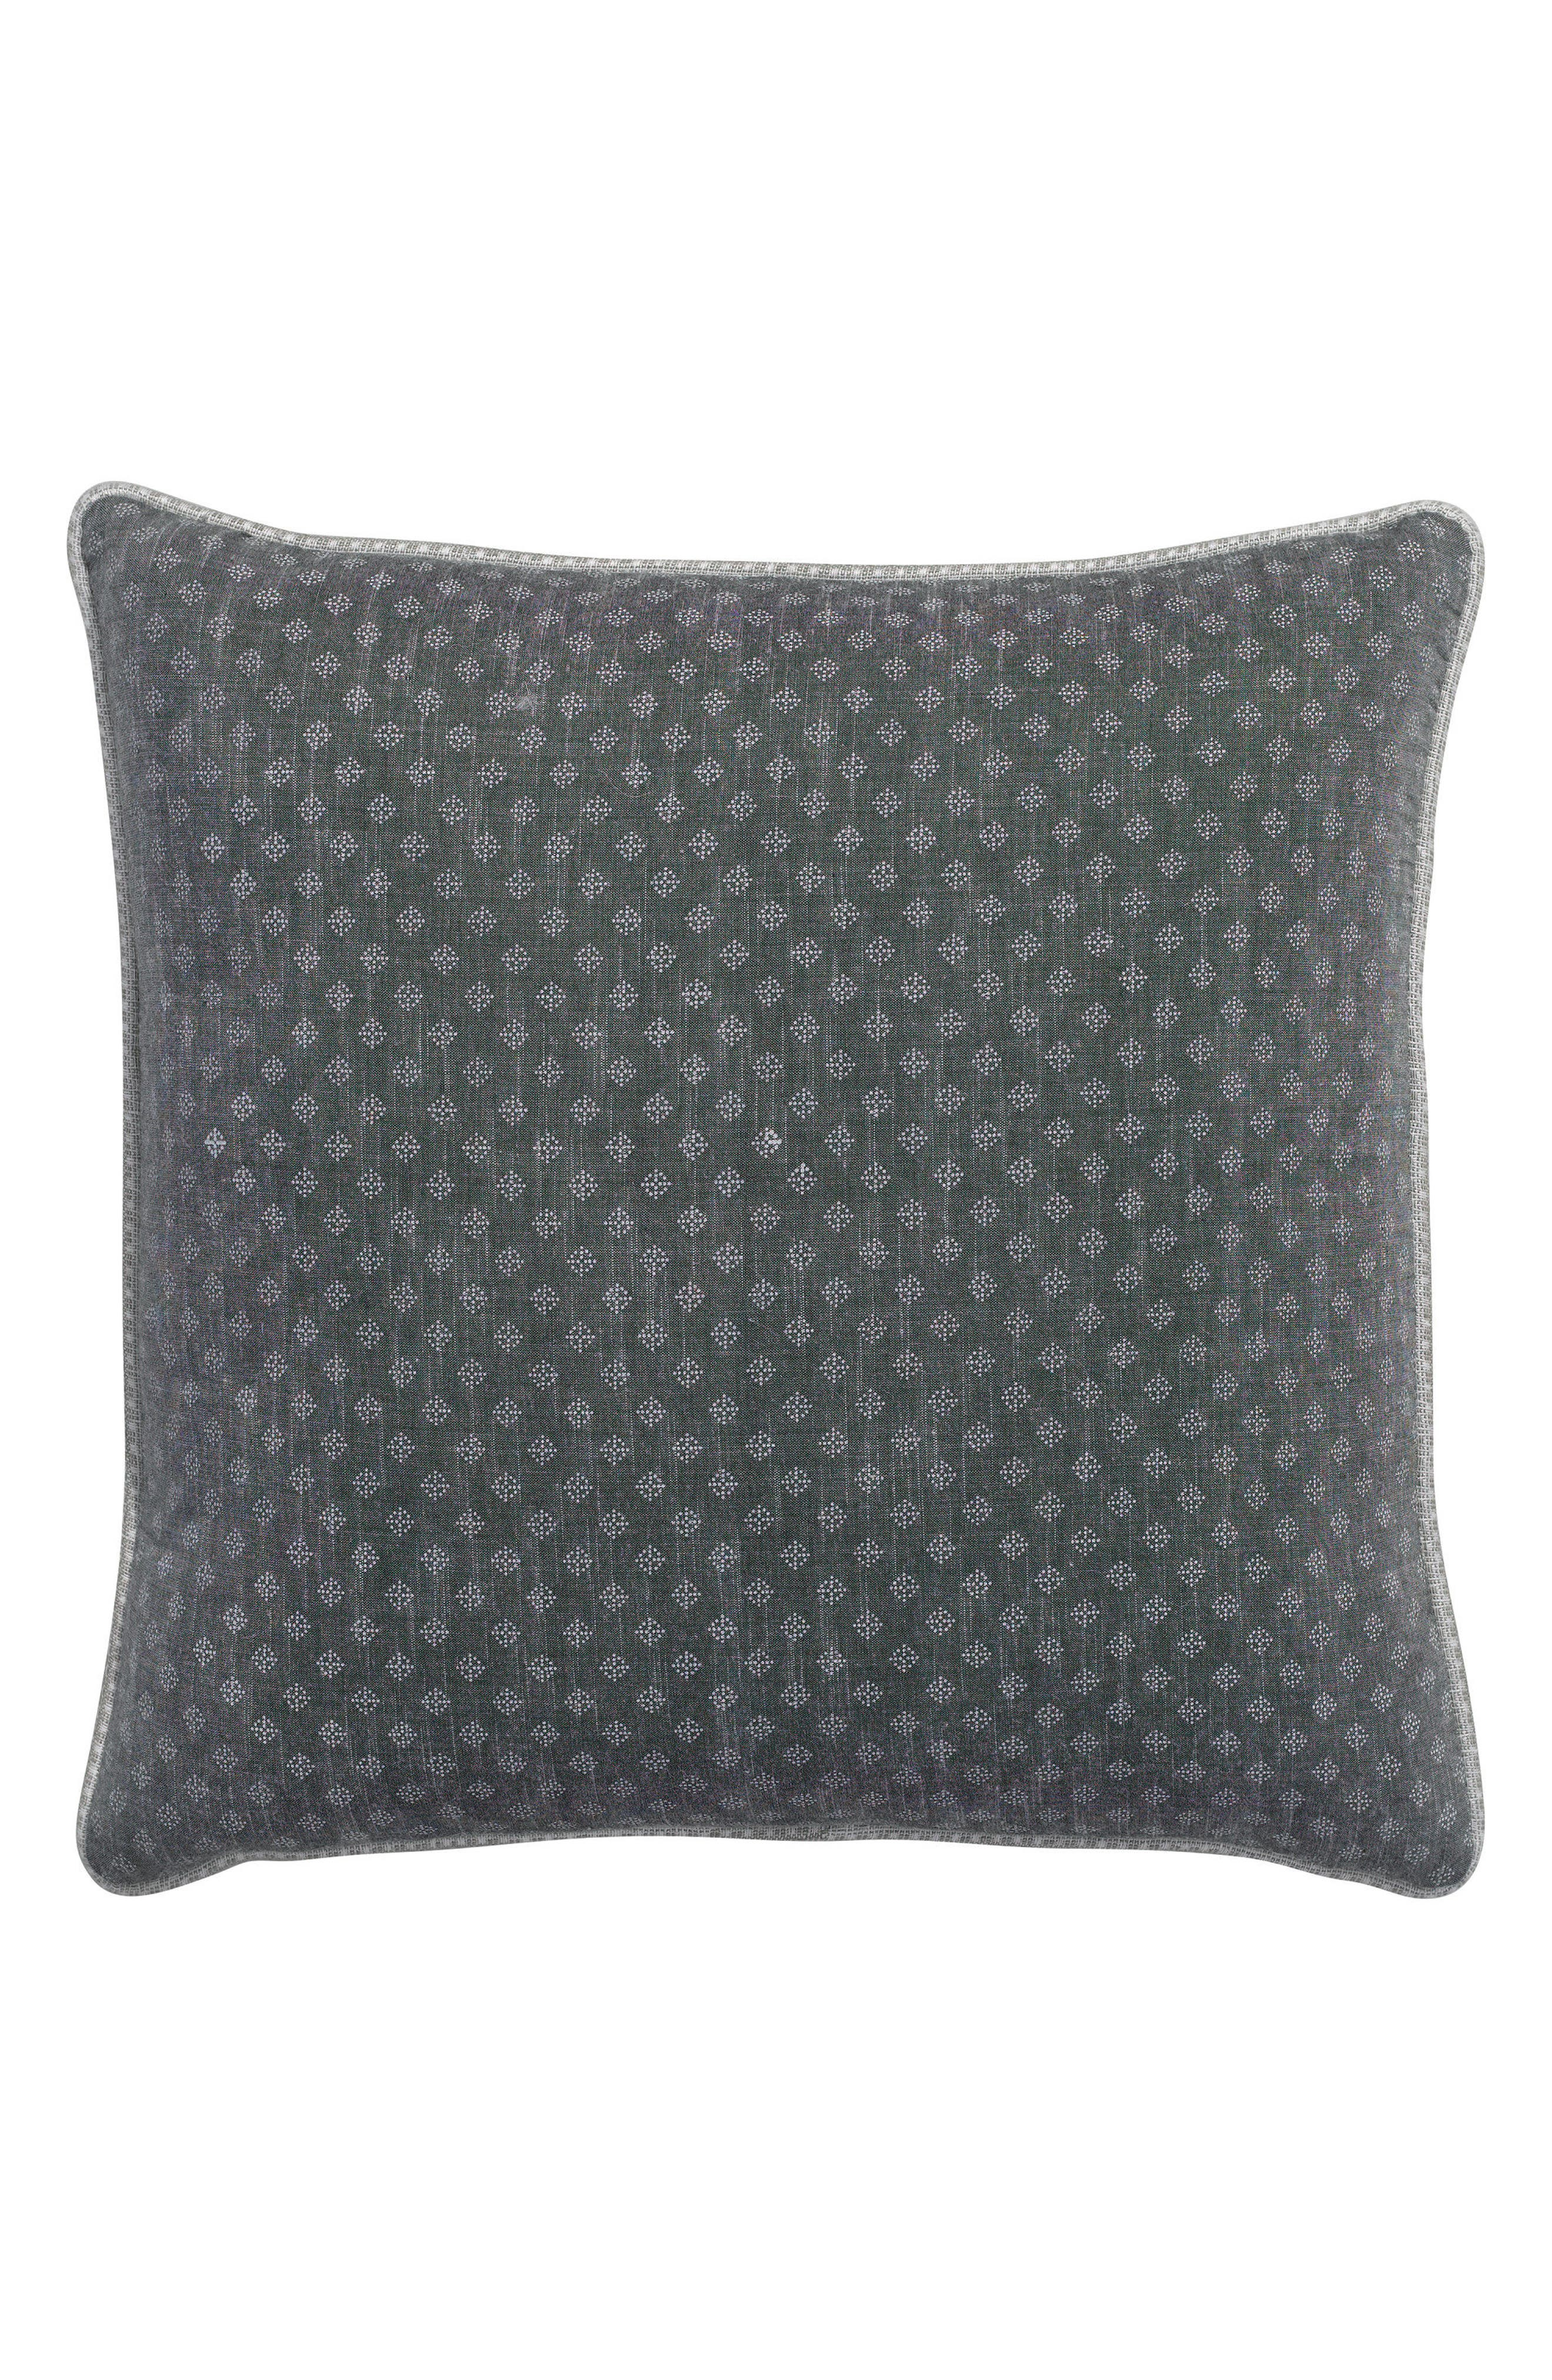 Park Ave Square Printed Dot Organic Cotton Accent Pillow,                         Main,                         color, Dark Grey